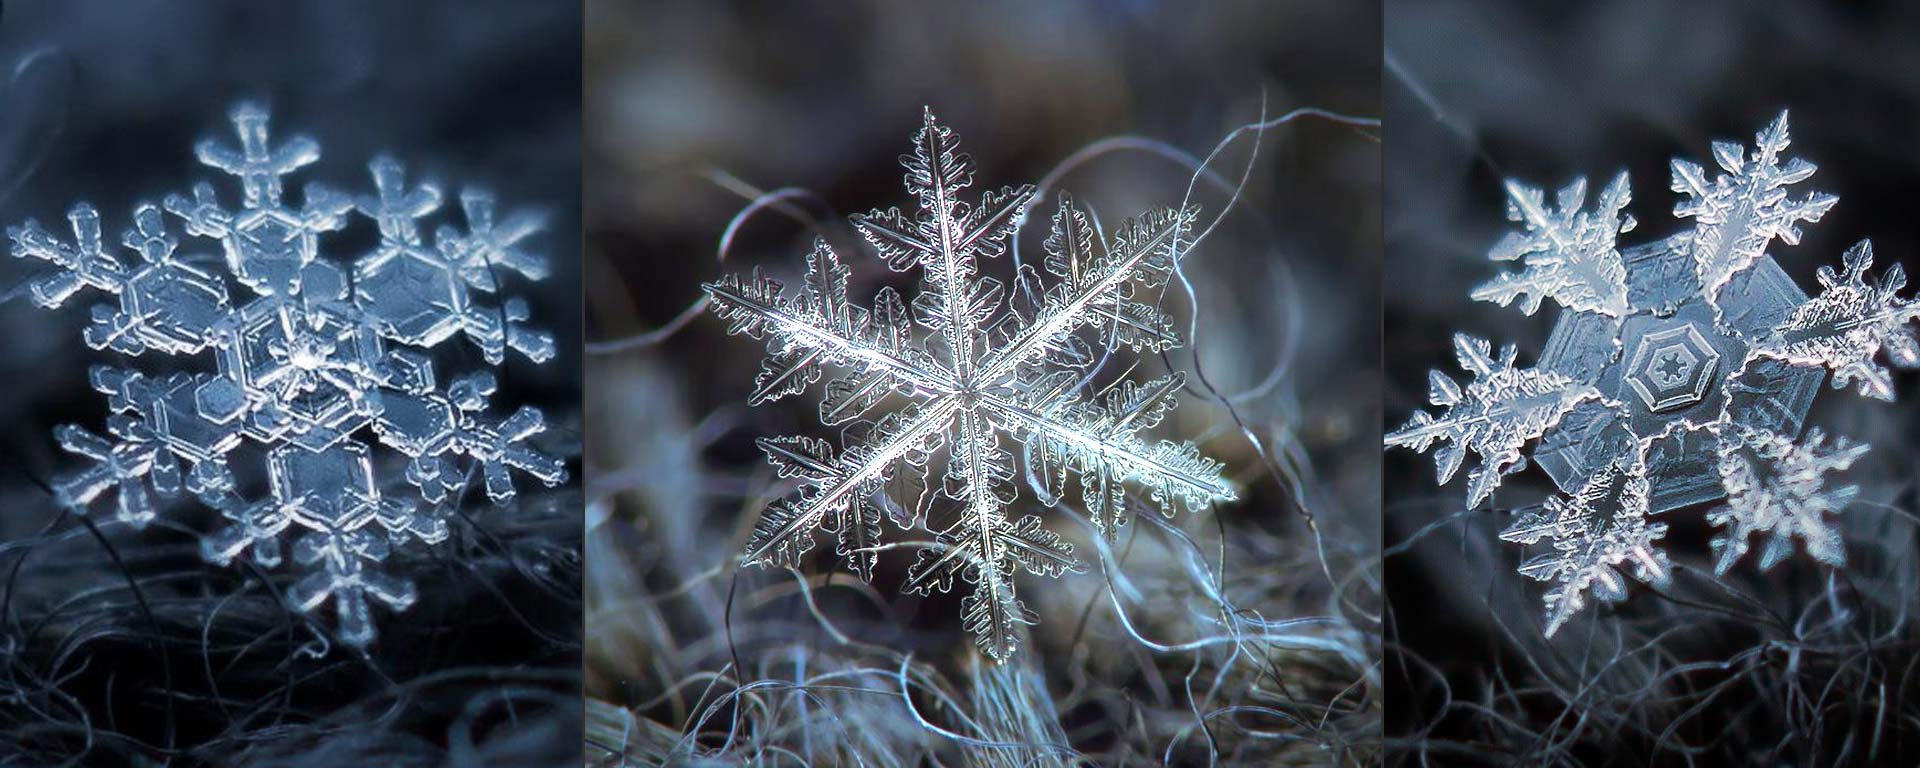 Featured Natural Beauty of Snowflakes